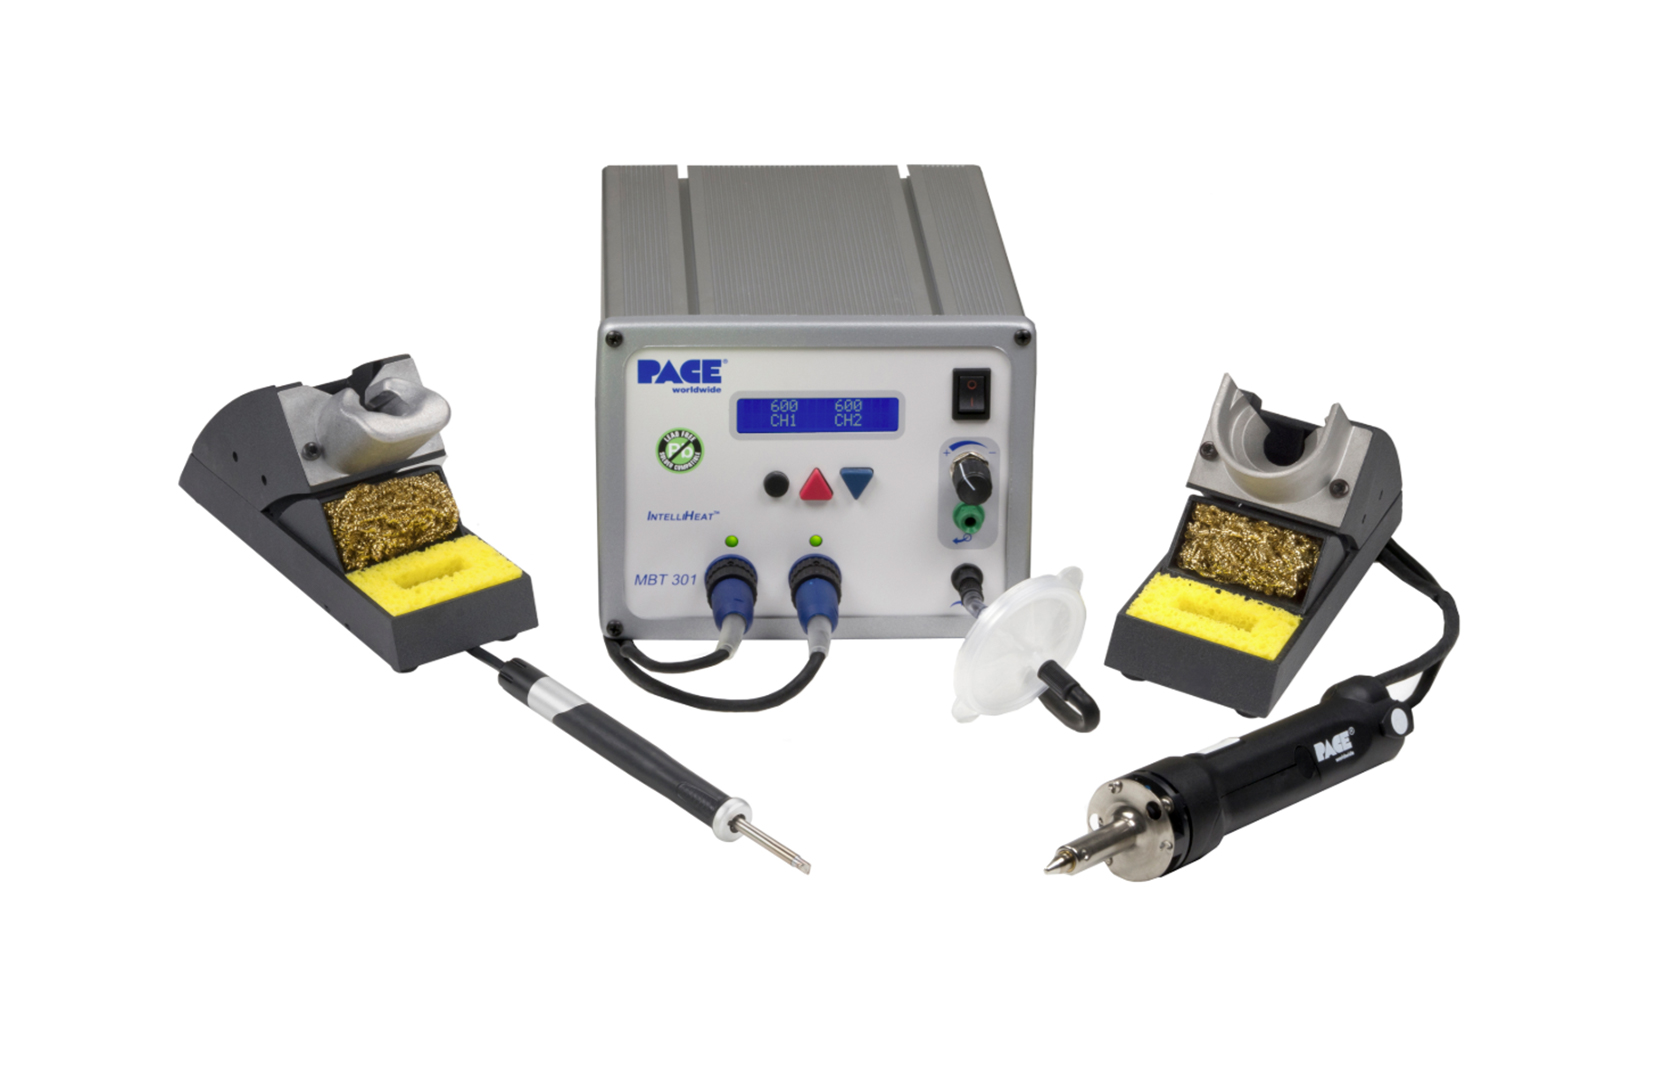 MBT301 Soldering & Desoldering Station with TD-100A & SX-100, 230V